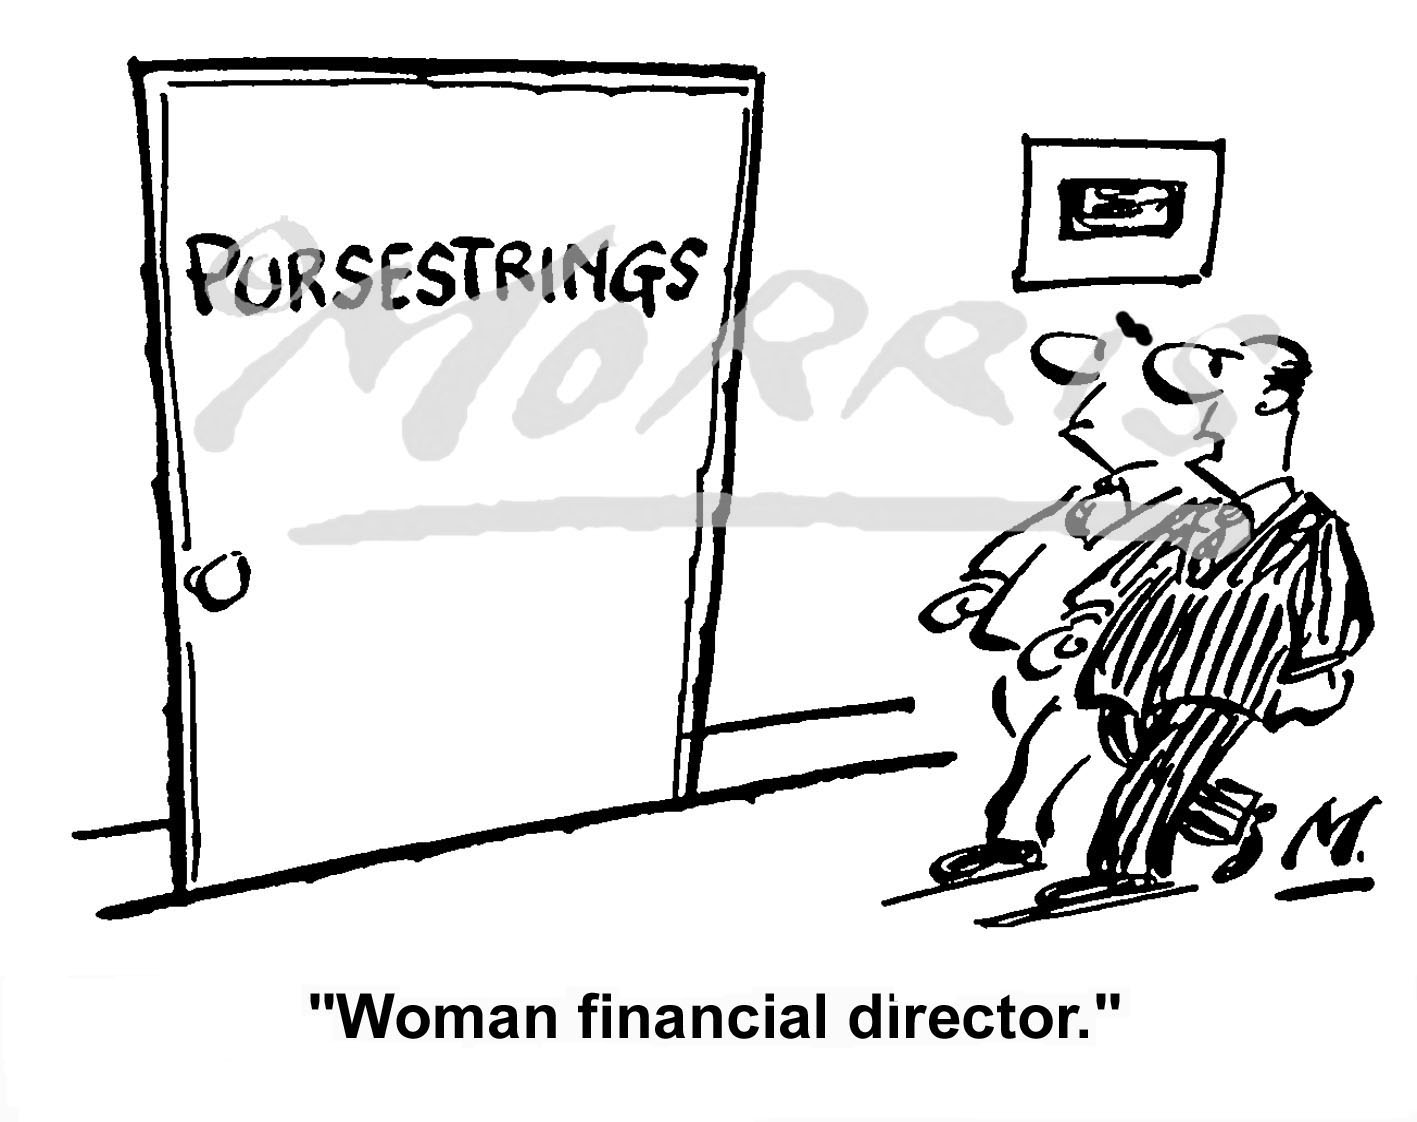 Woman financial director cartoon Ref: 0603bw